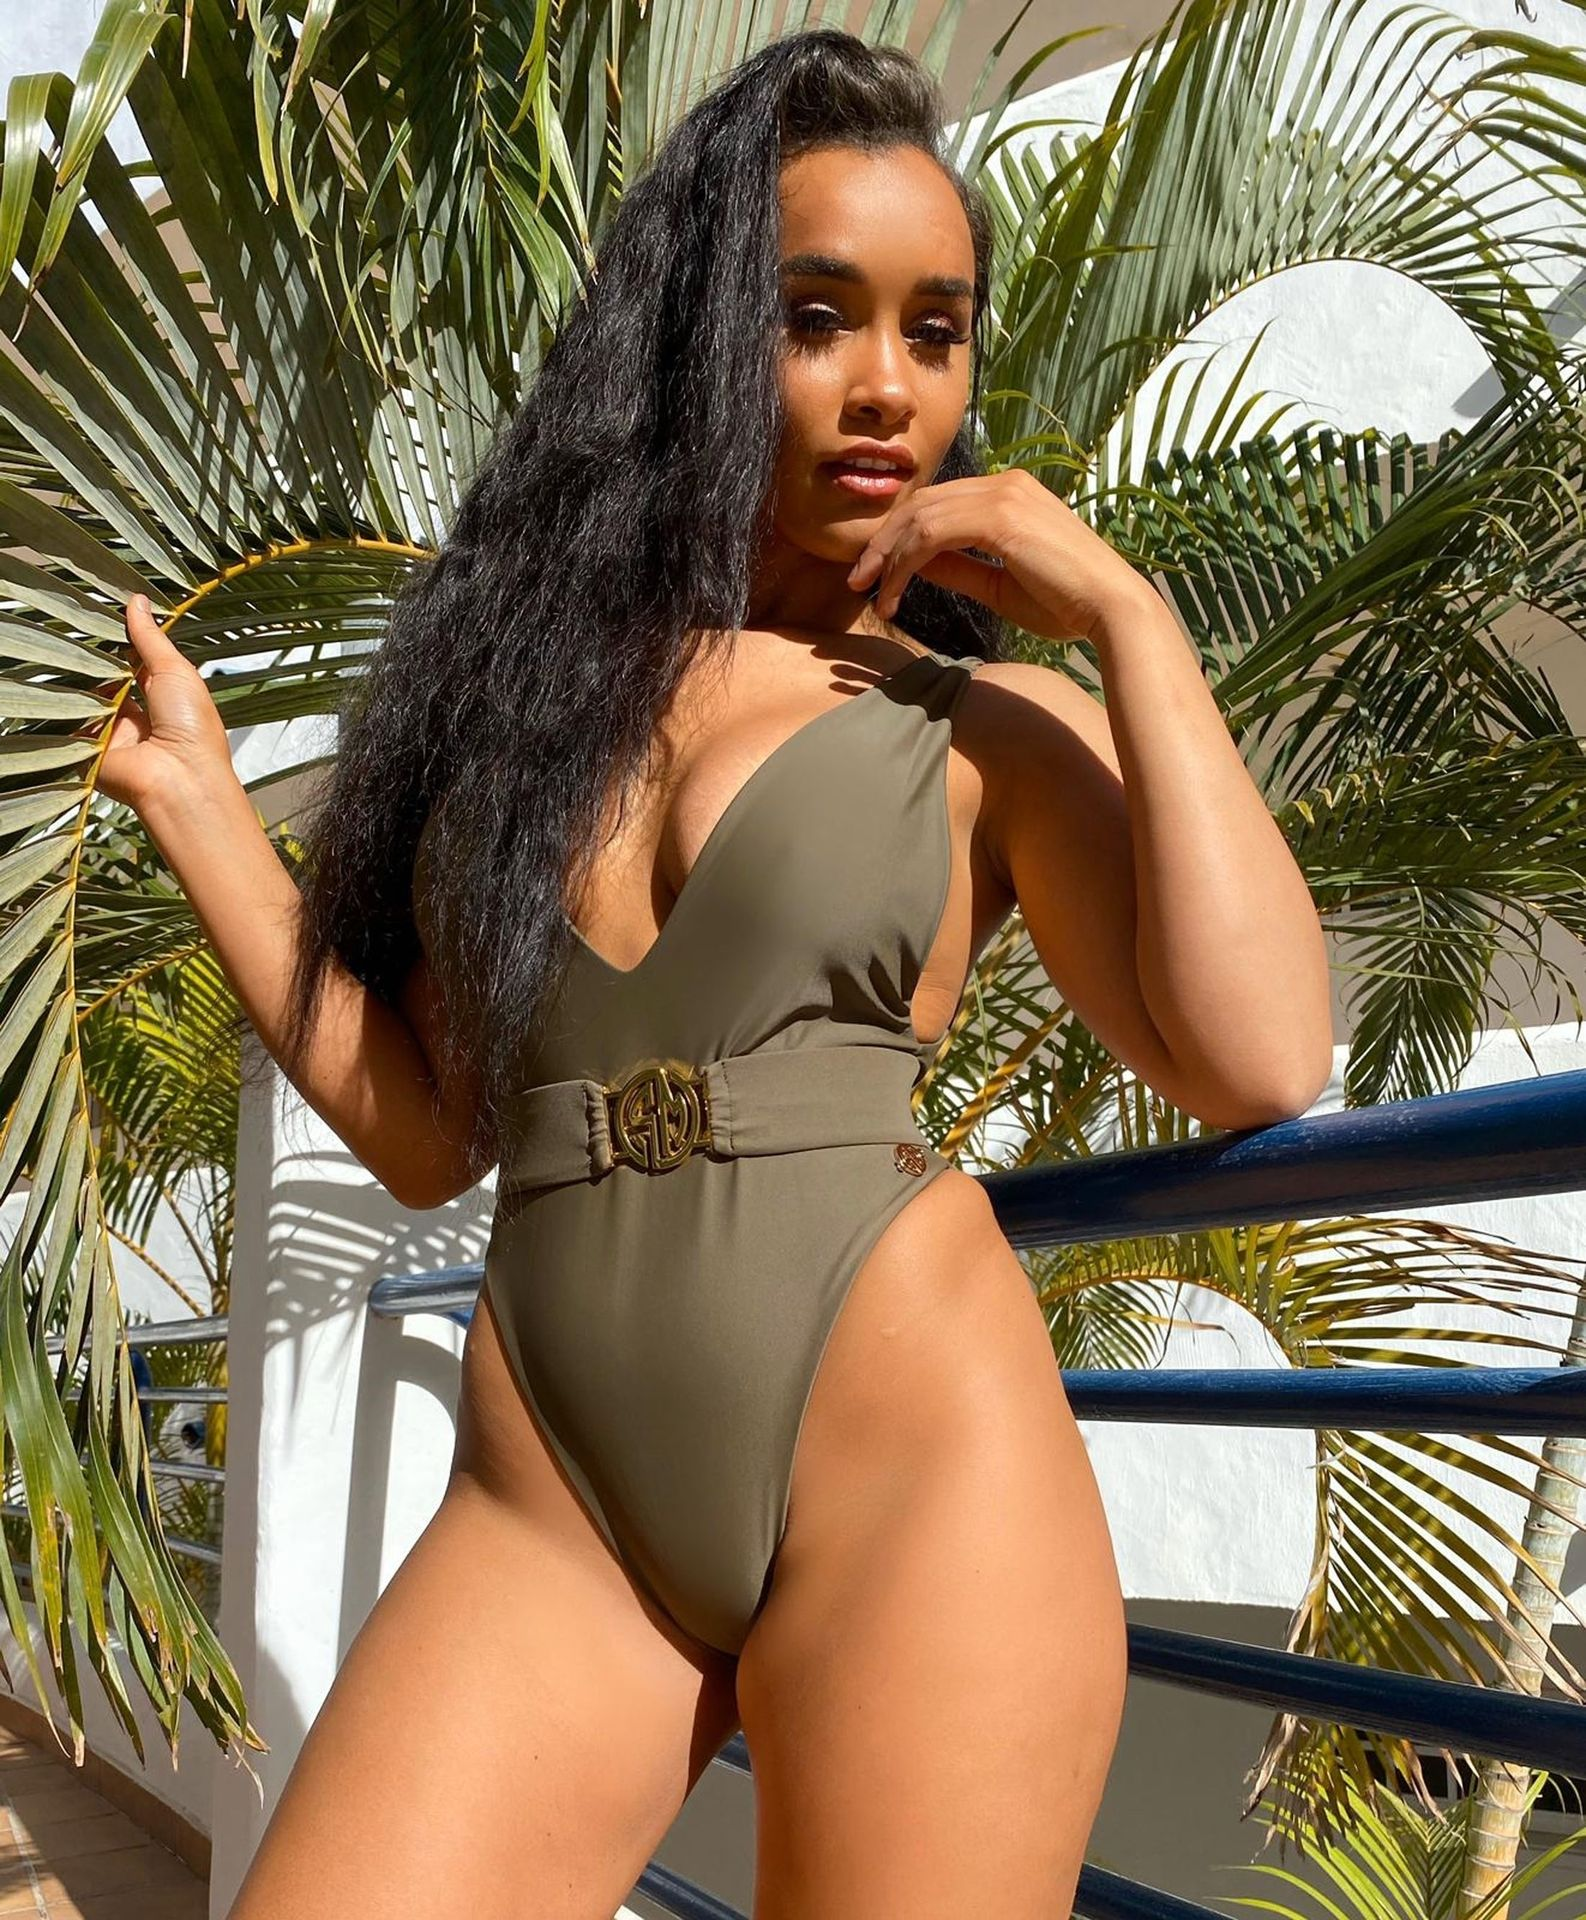 Sian Gabbidon Gets The Pulses Racing By Showcasing Her New Swimwear Collection 0013